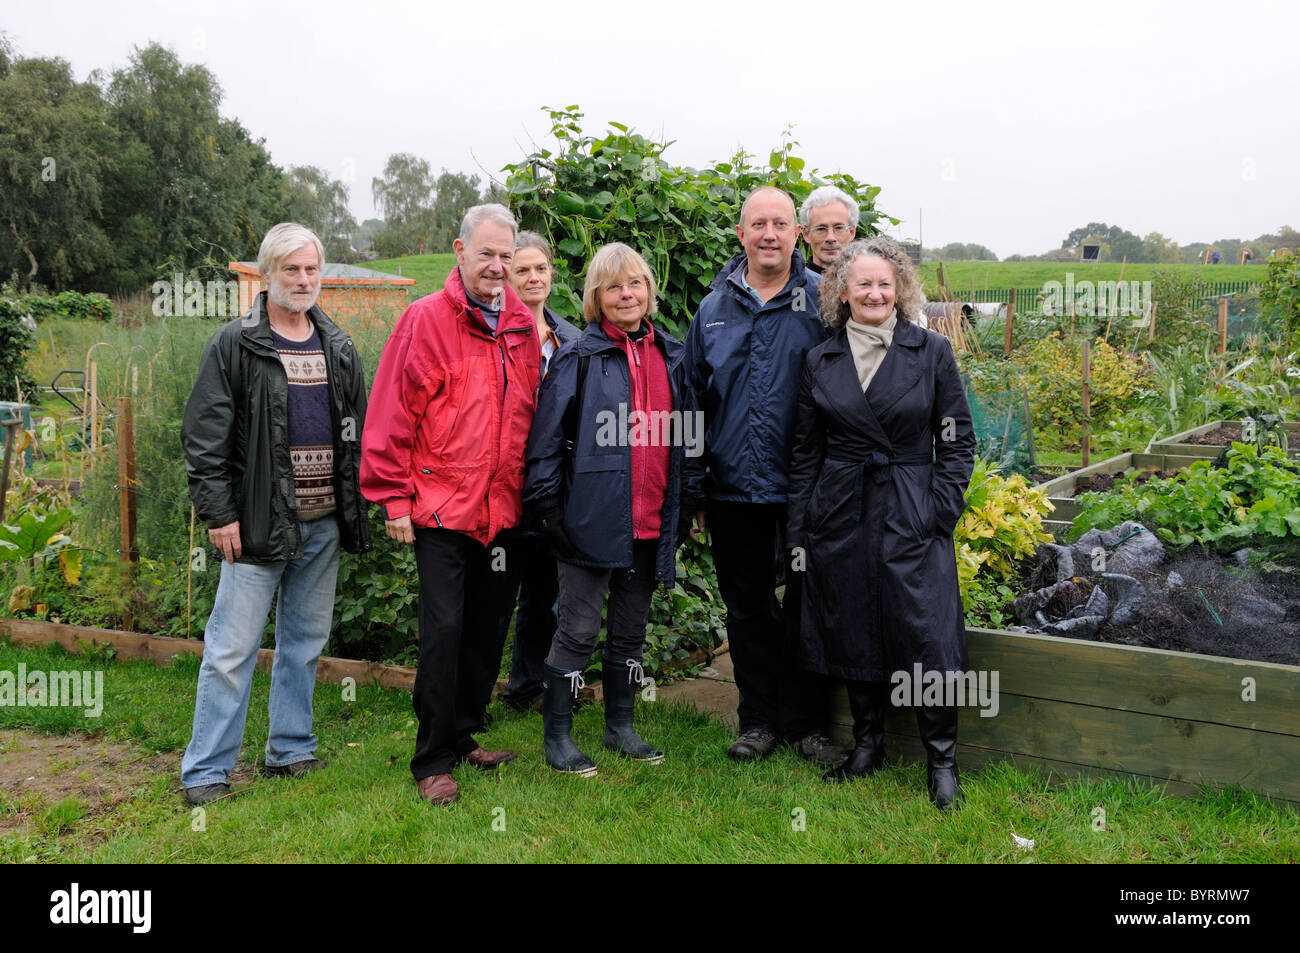 Jenny Jones Green GLA Member with group of people at the Fortis Green Allotment site London England UK - Stock Image